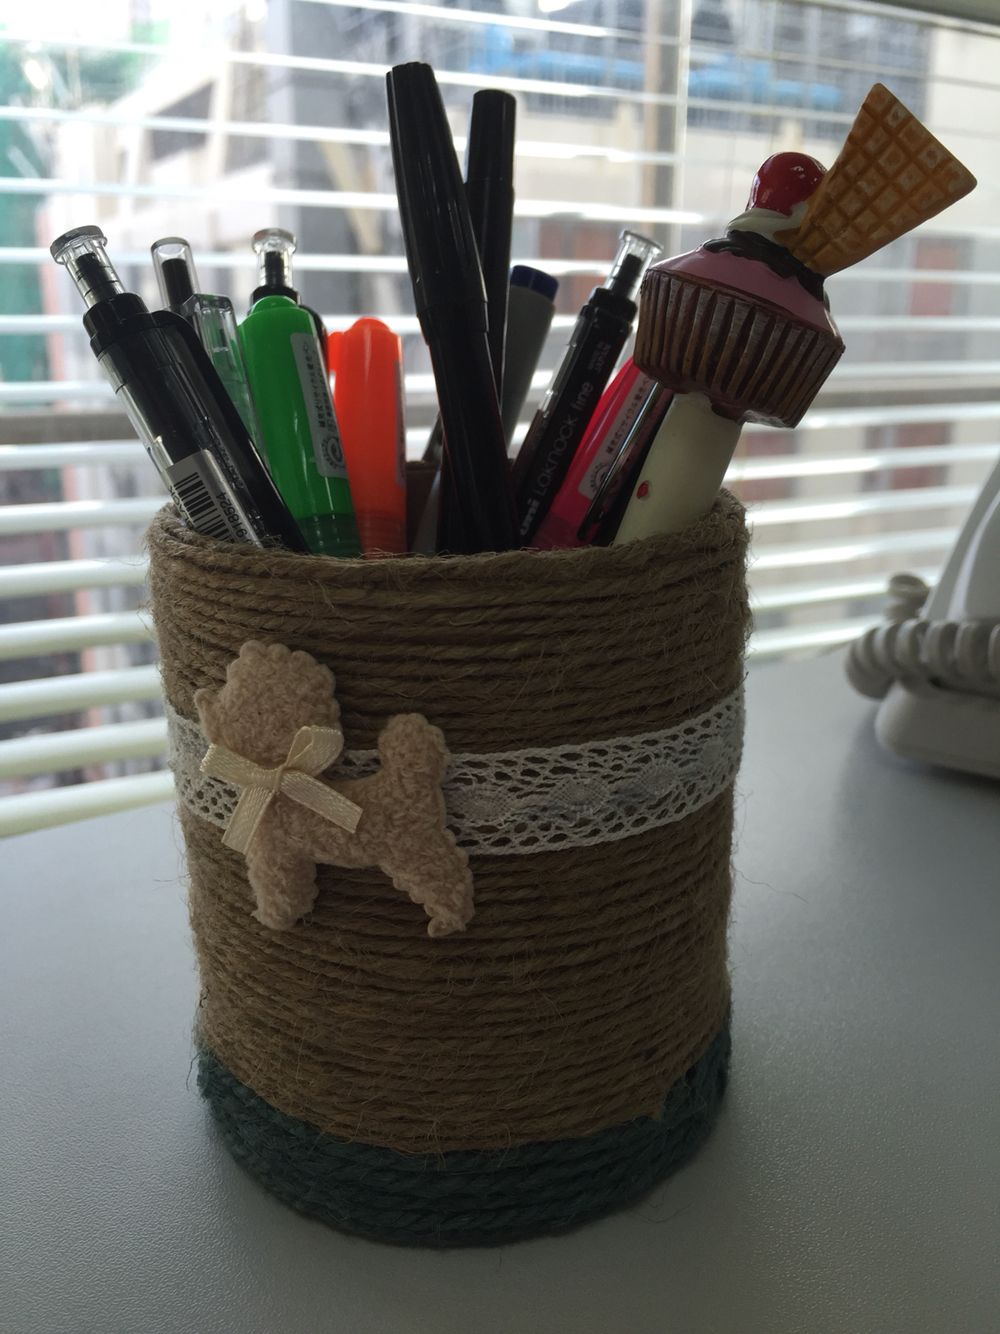 Pen holder made from toilet paper roll